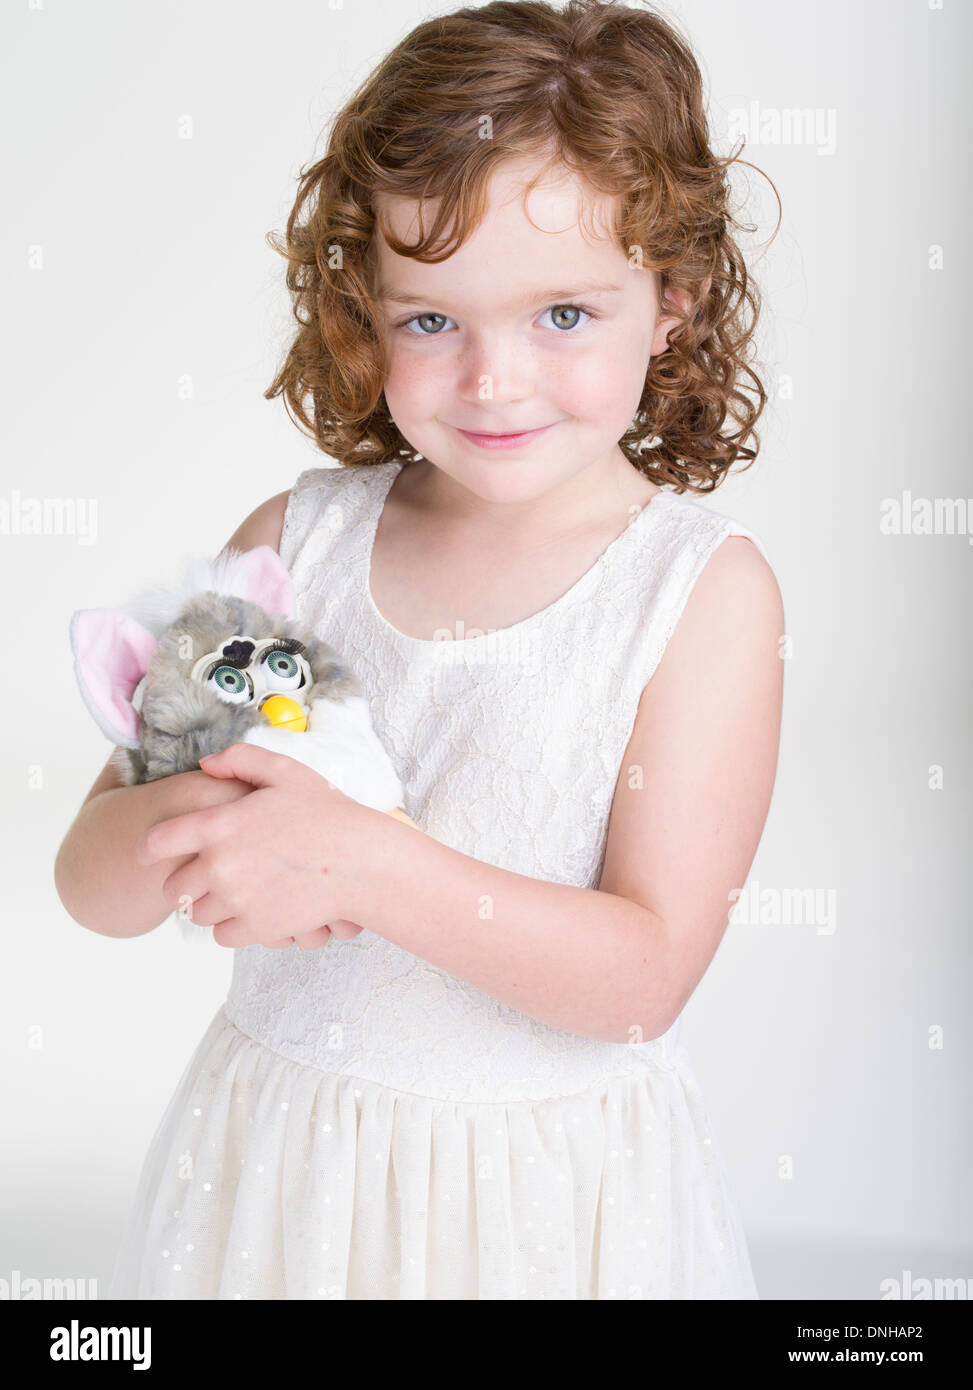 Young Girl with 1998 Furby electronic robotic toy by Tiger Electronics - Stock Image